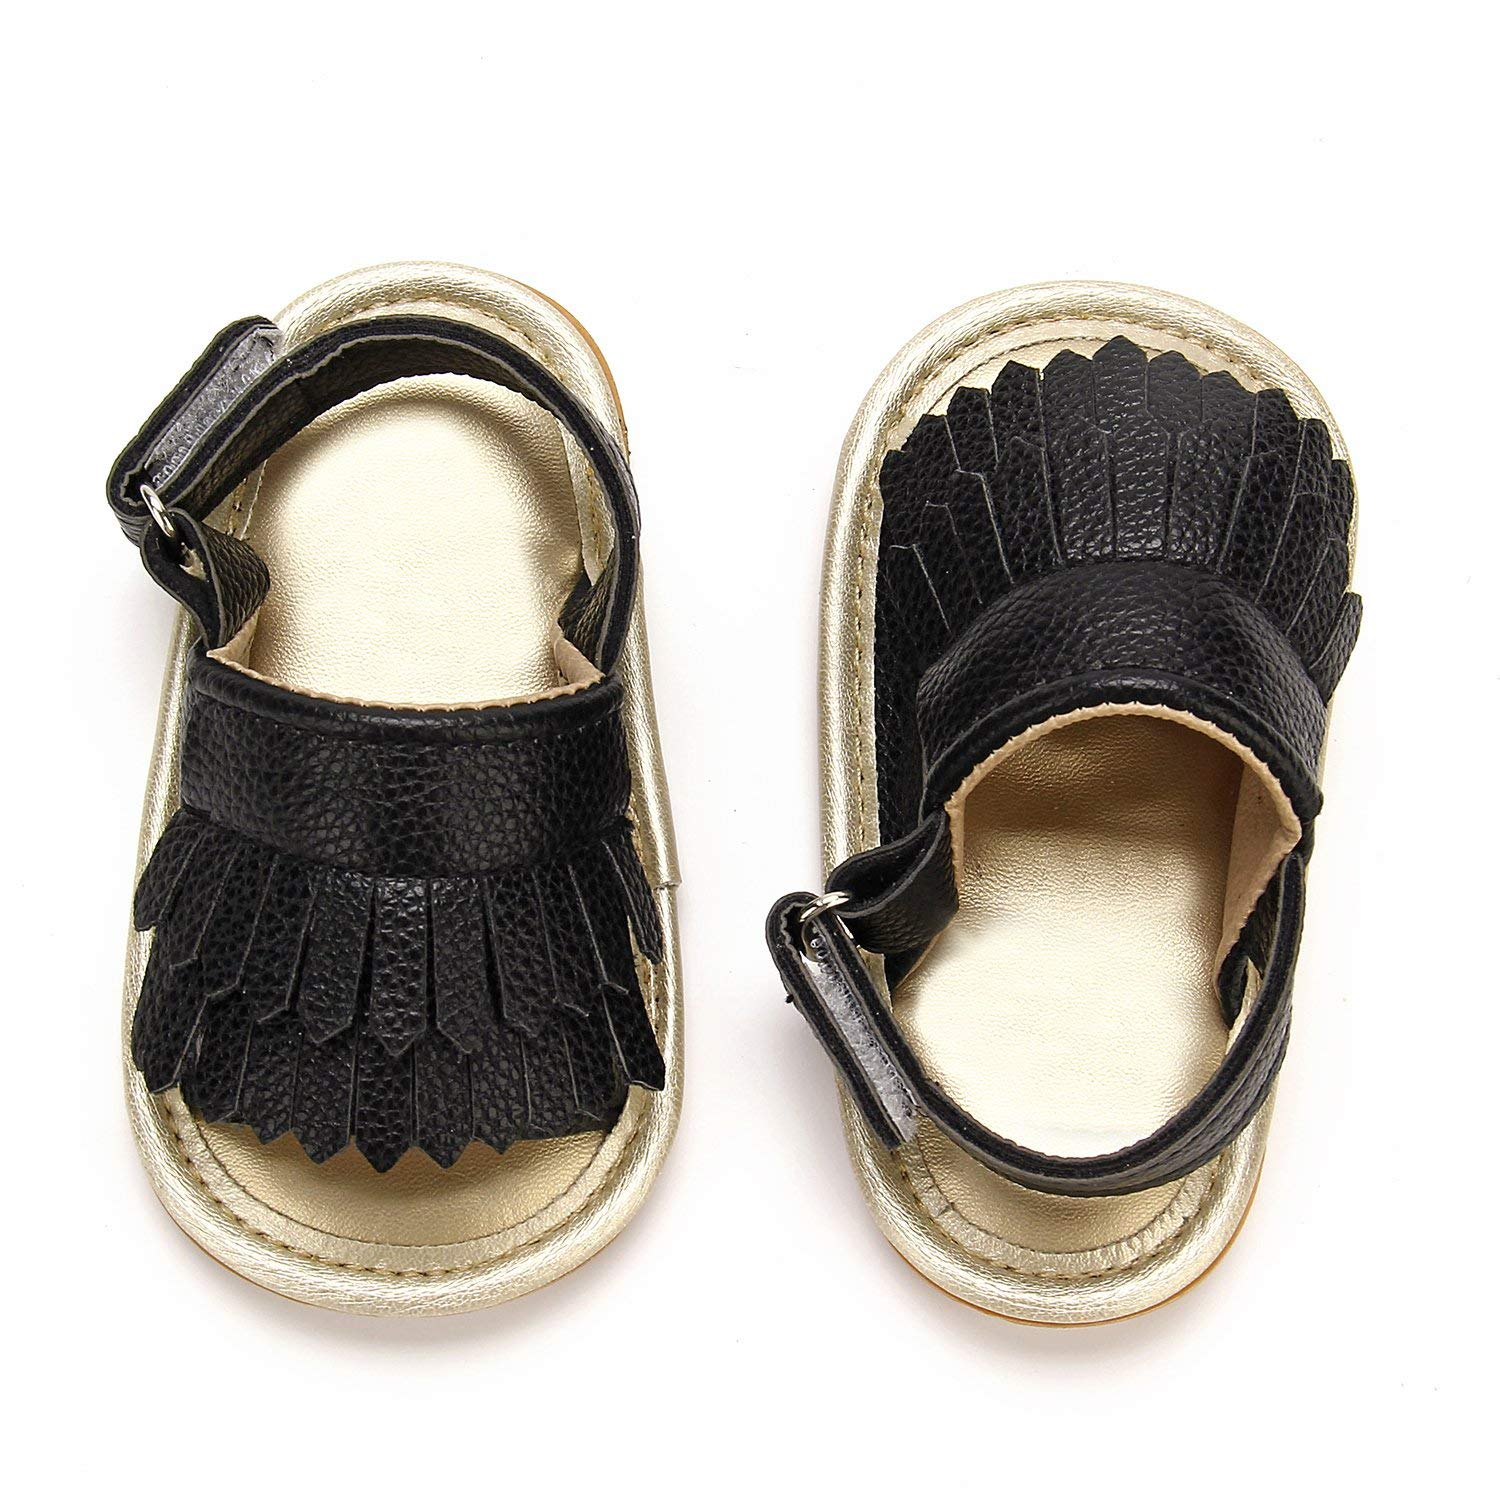 fac21ffcf Cheap Baby Shoes 0 6 Months, find Baby Shoes 0 6 Months deals on ...